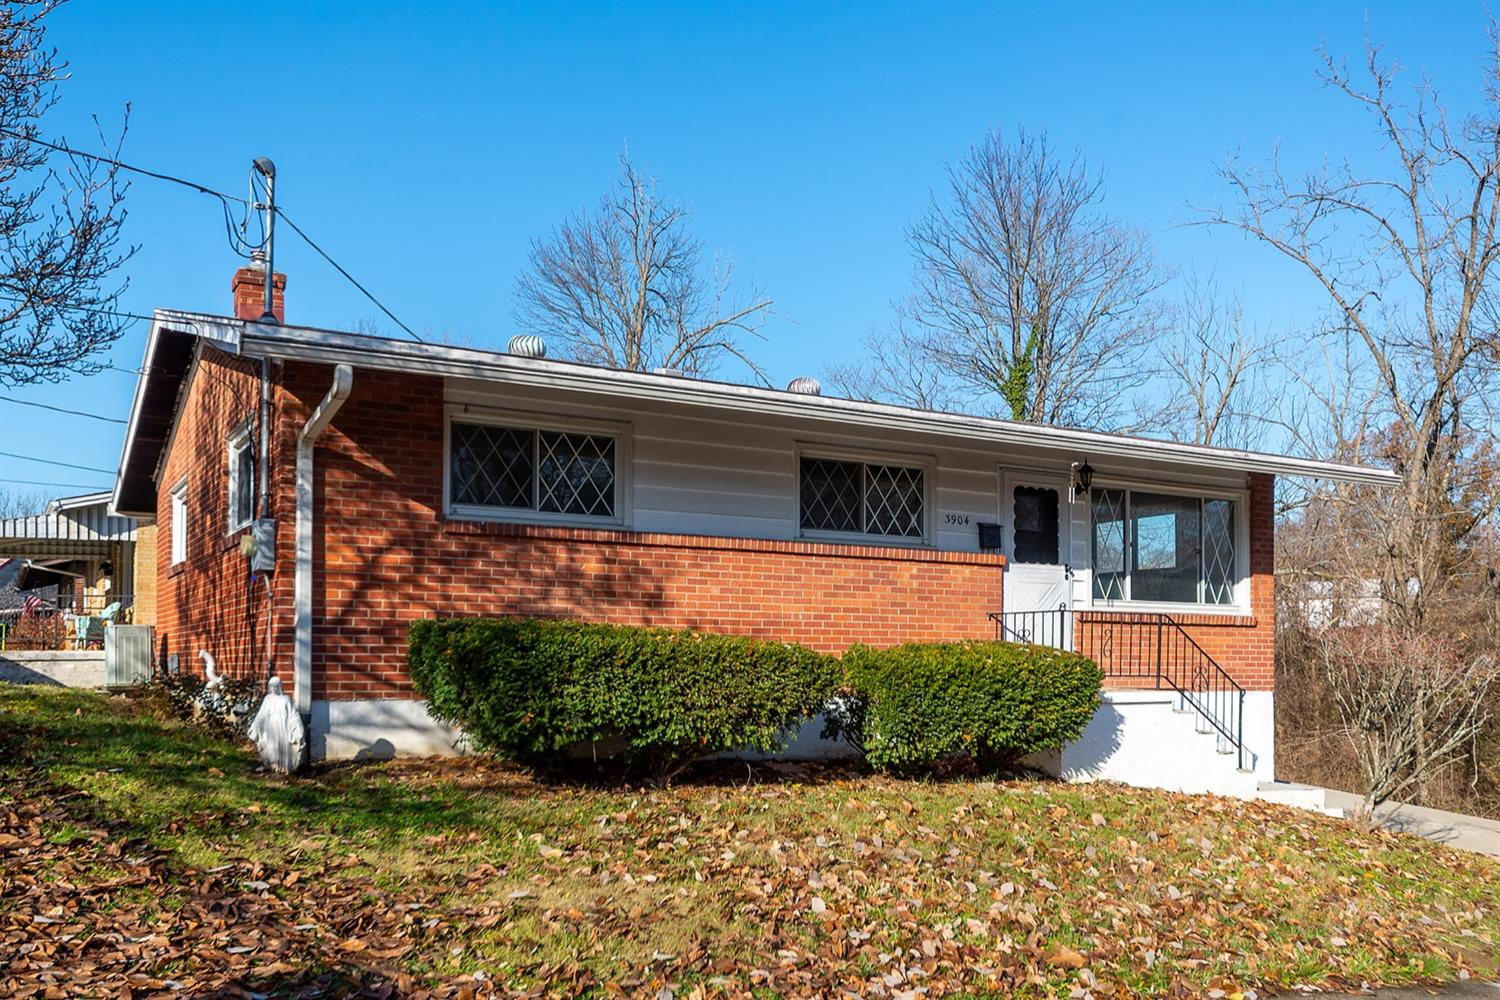 3904 Mantell Ave Dillonvale, OH